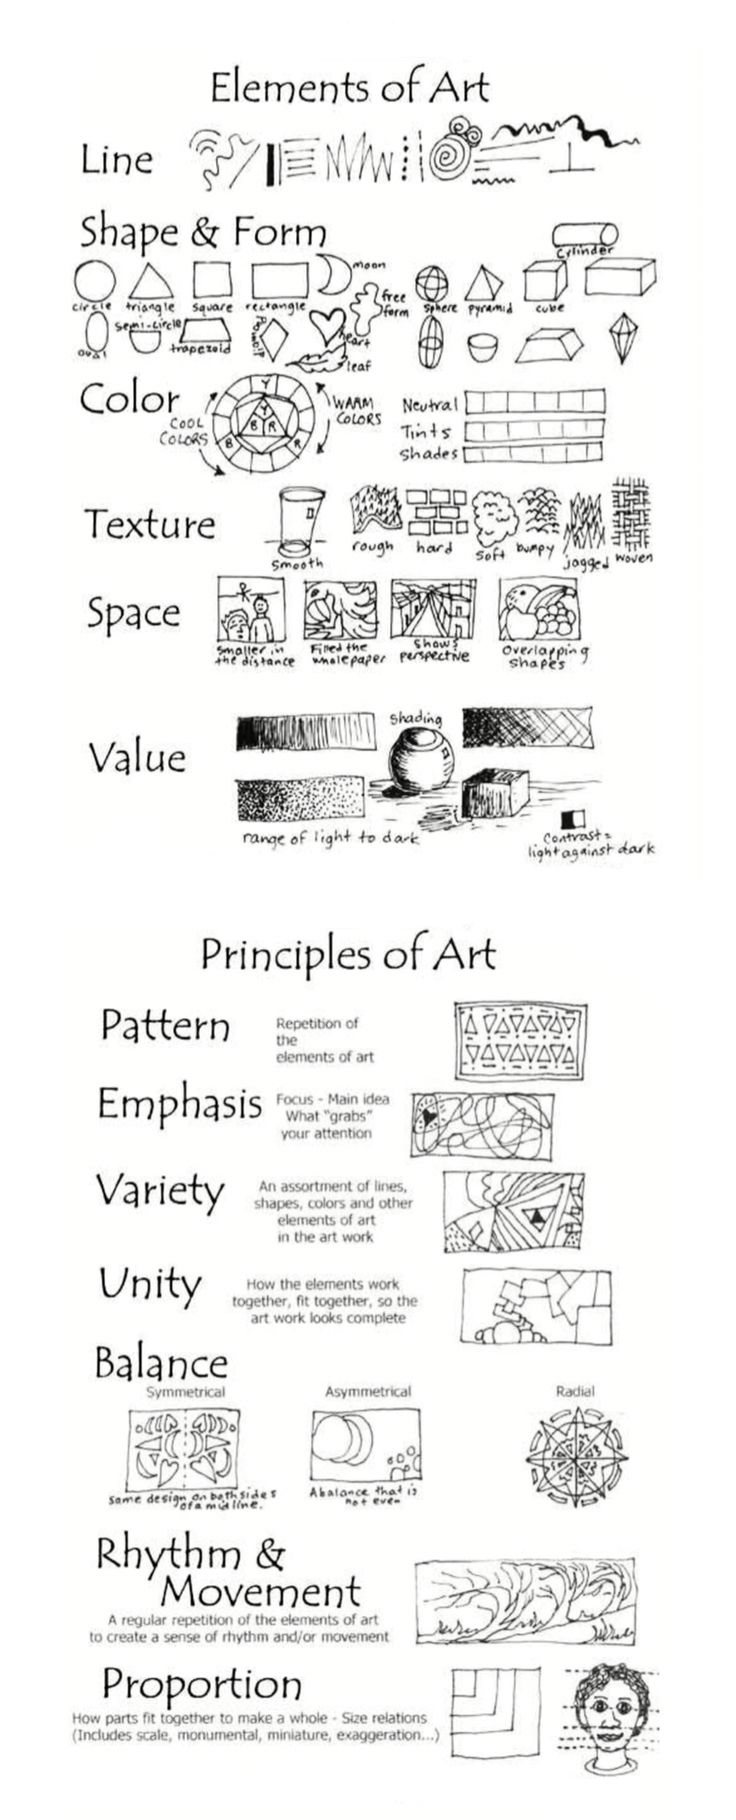 ('The Elements of Art and The Principles of Art...) https://uk.pinterest.com/shoes4gina/elements-of-art-and-principles-of-design/